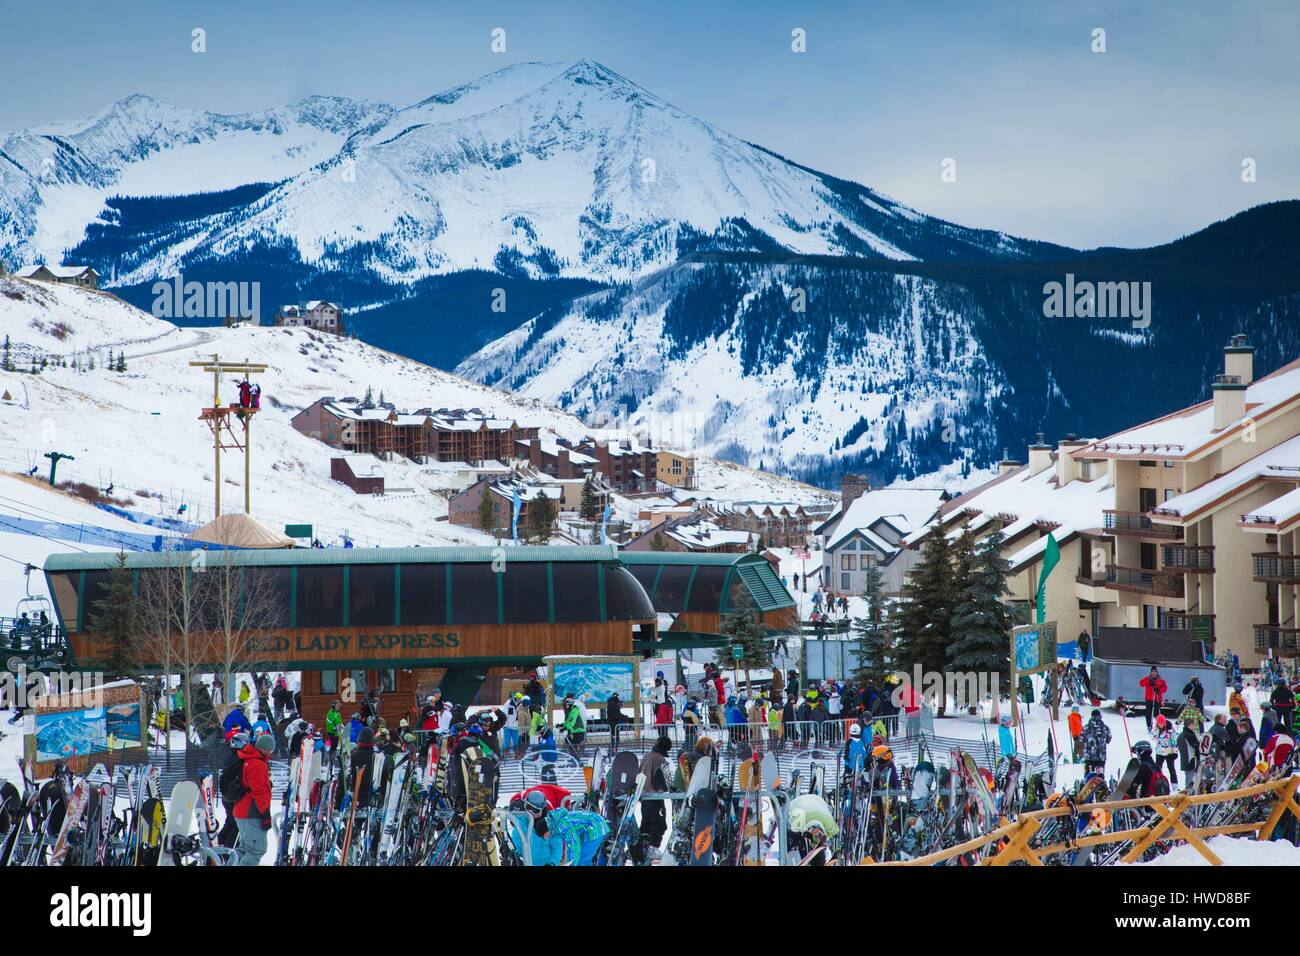 United States, Colorado, Crested Butte, Mount Crested Butte Ski Village, elevated view - Stock Image